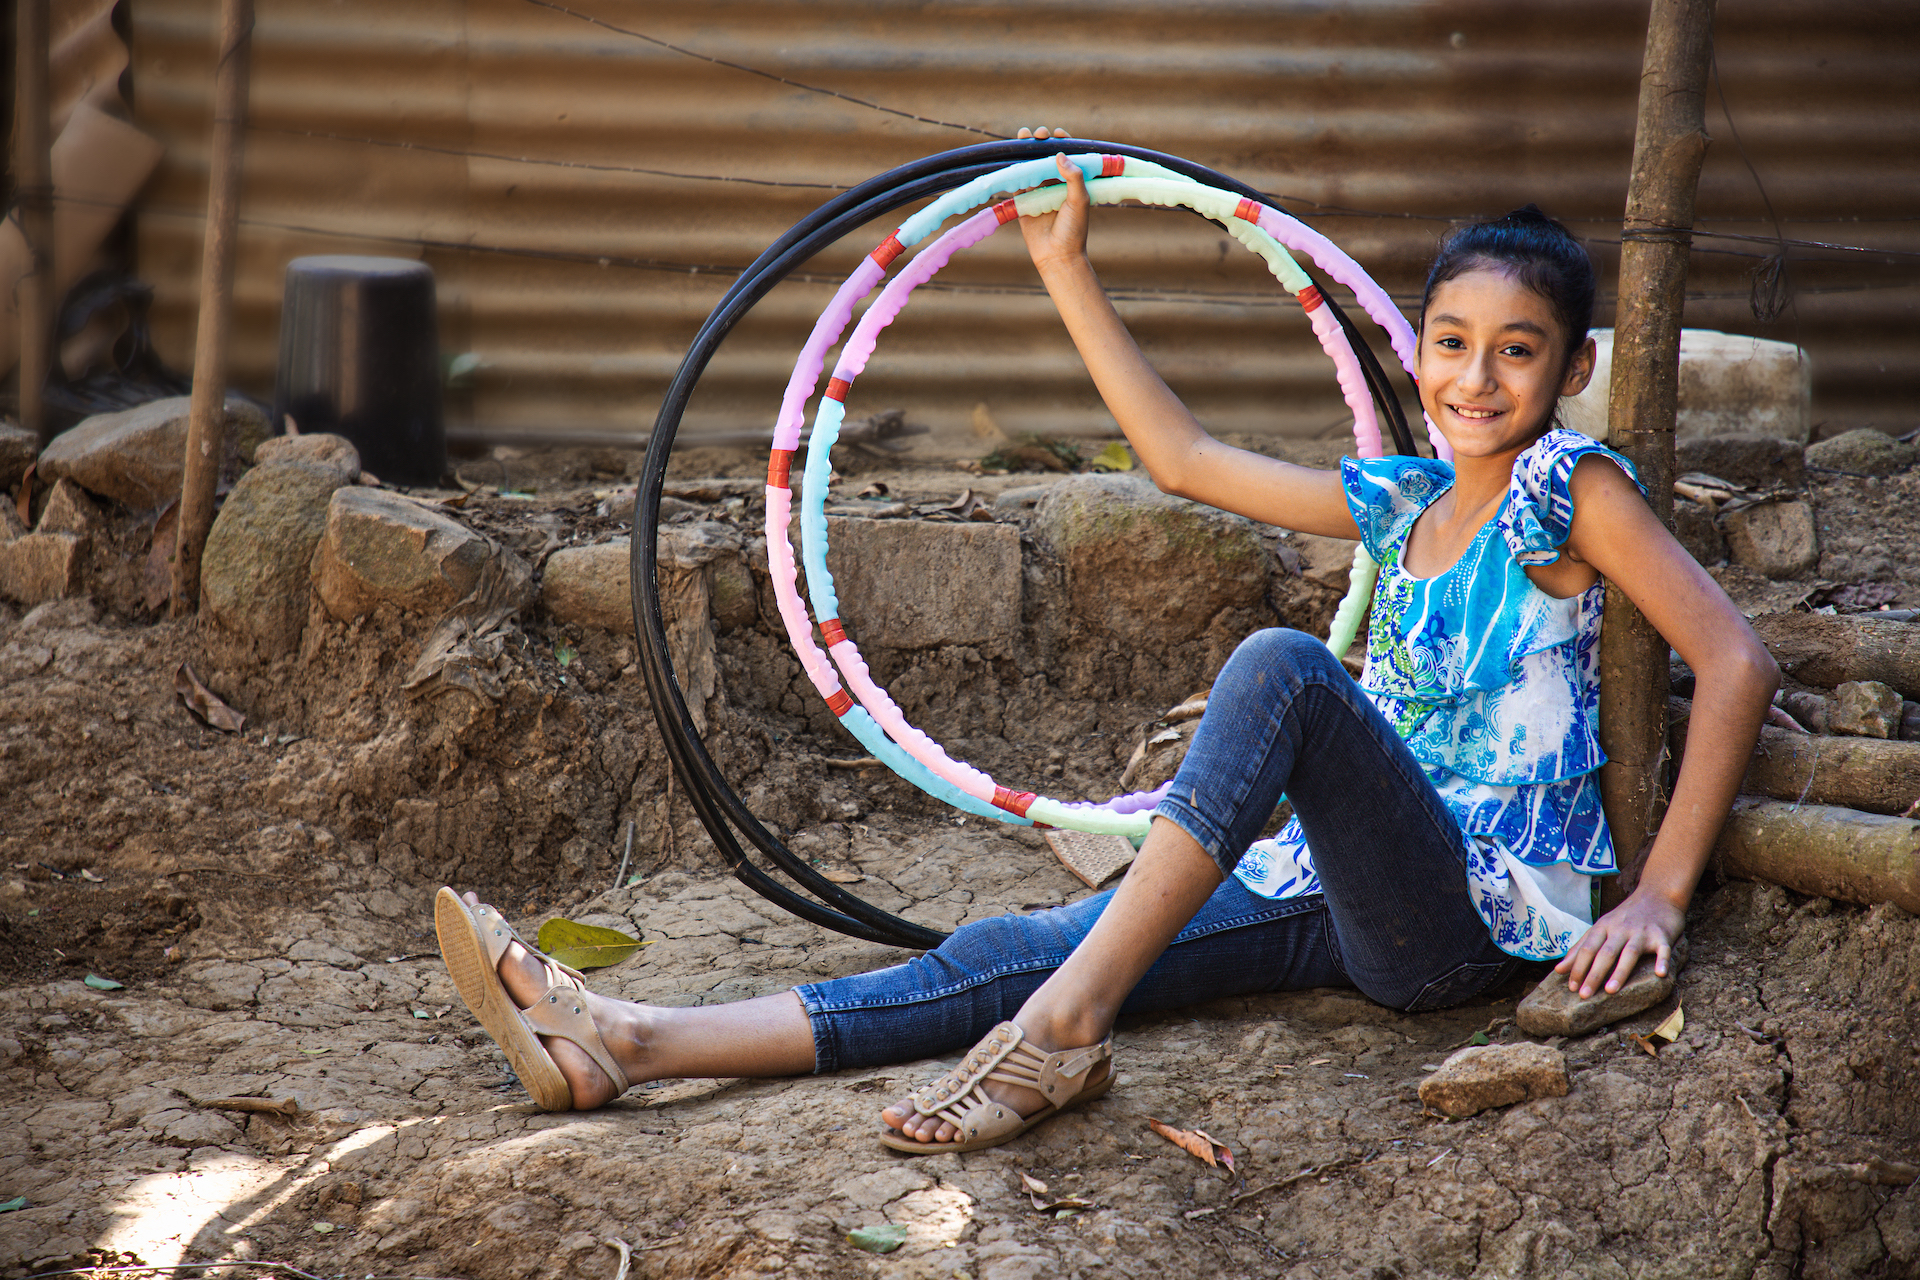 Suleyma is wearing jeans with a colorfully patterned shirt. She is sitting in front of her home and is holding several hula hoops.